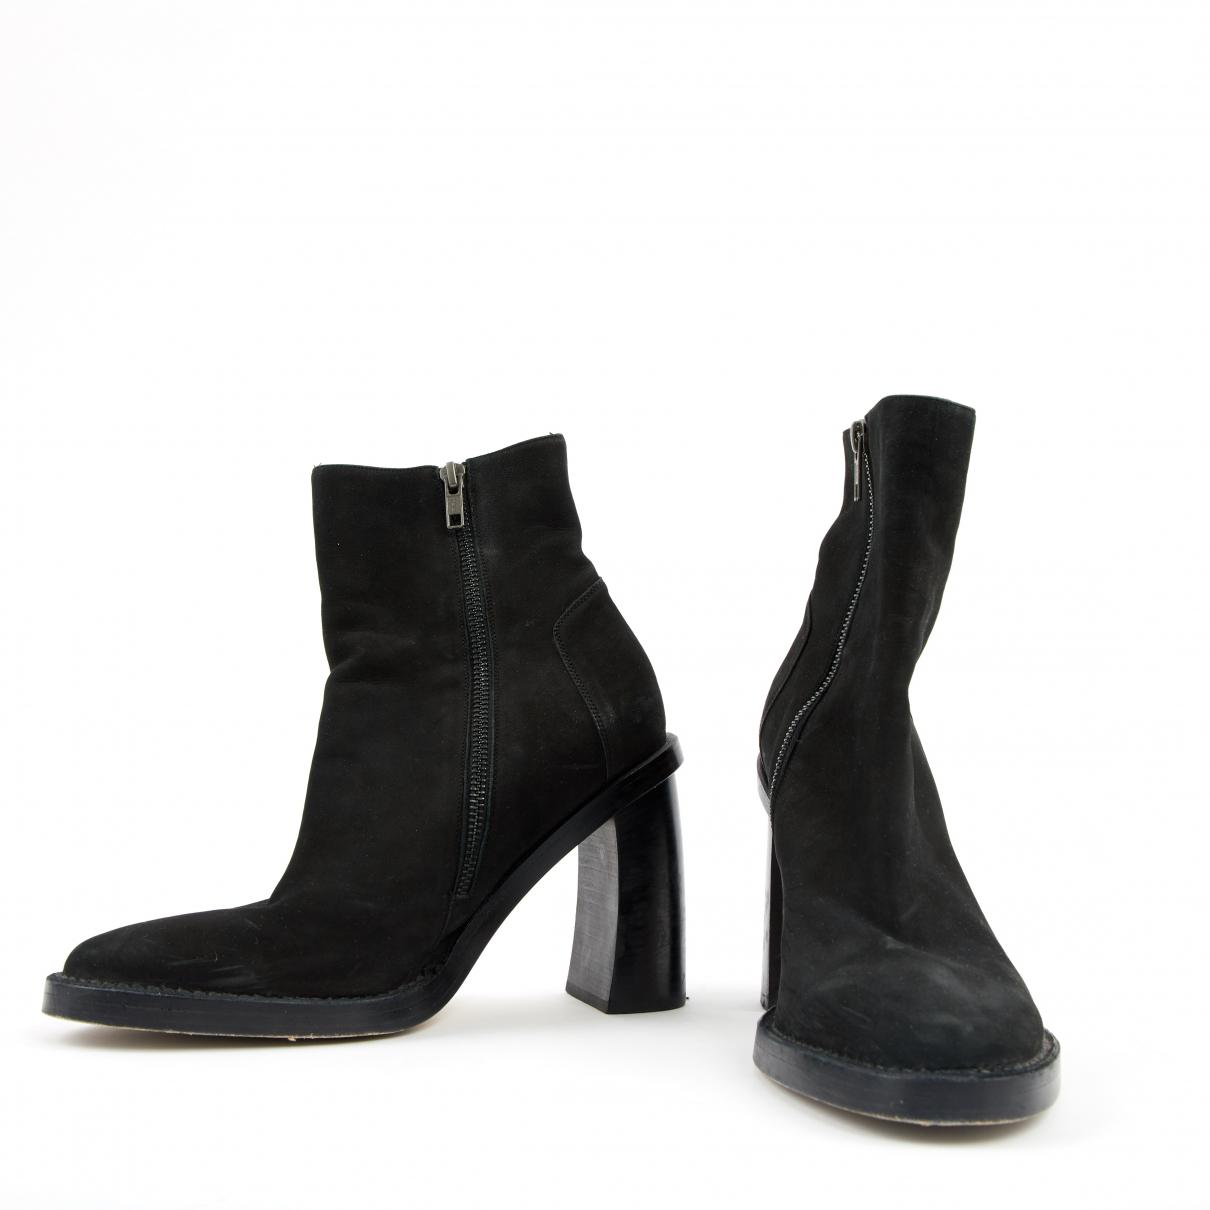 Ann Demeulemeester Suede Boots in Black